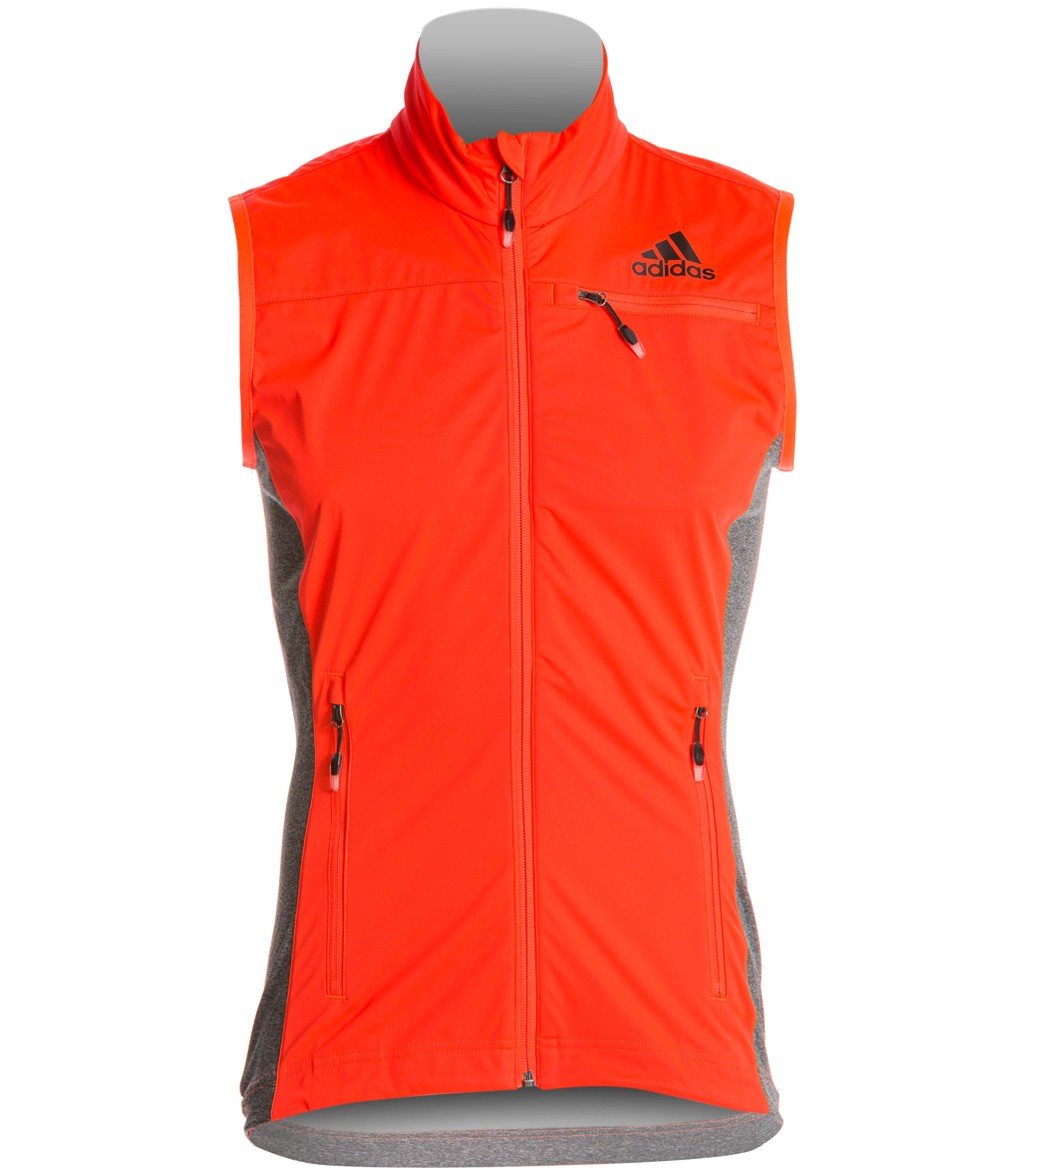 separation shoes 12672 b7f9d Adidas Men s Xperior Vest at SwimOutlet.com - Free Shipping